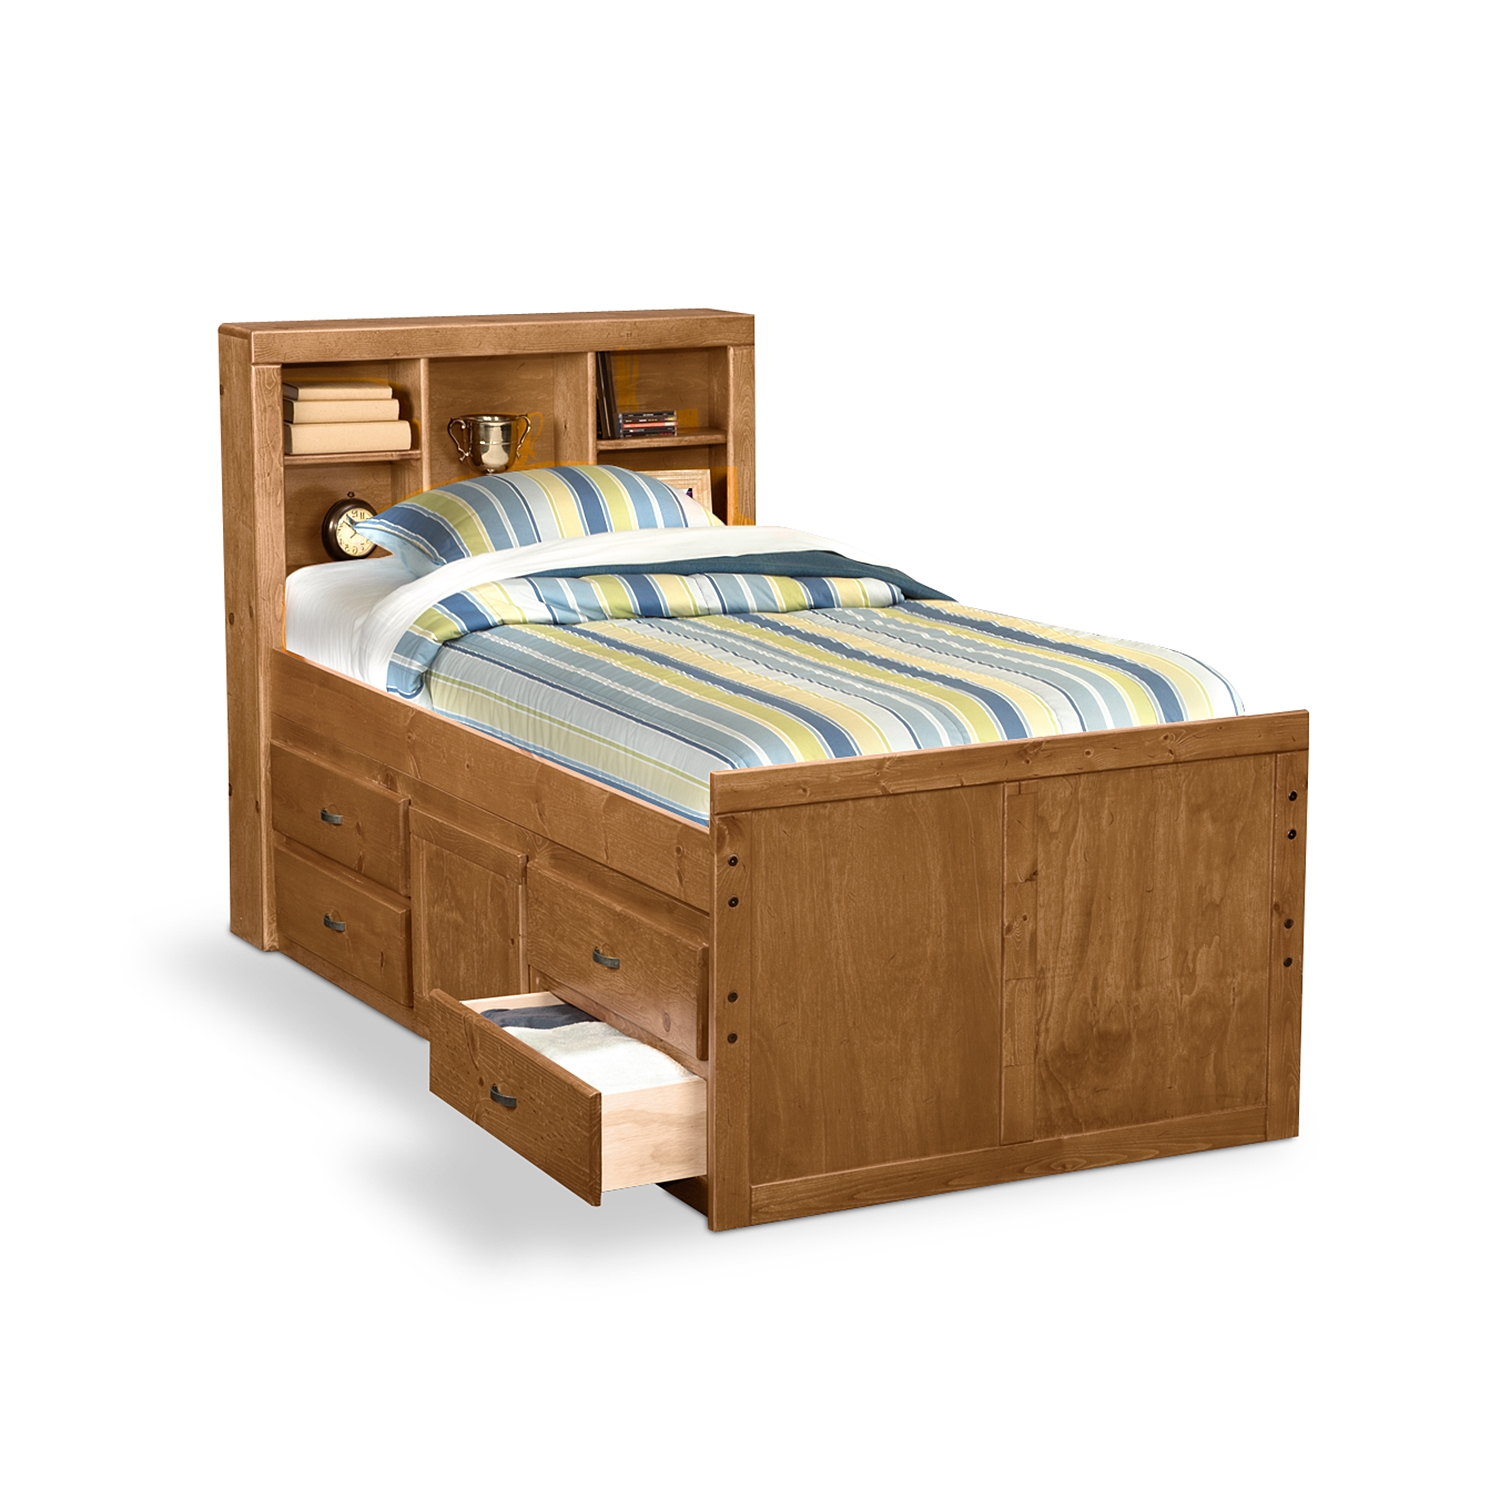 beds with drawers underneath homesfeed